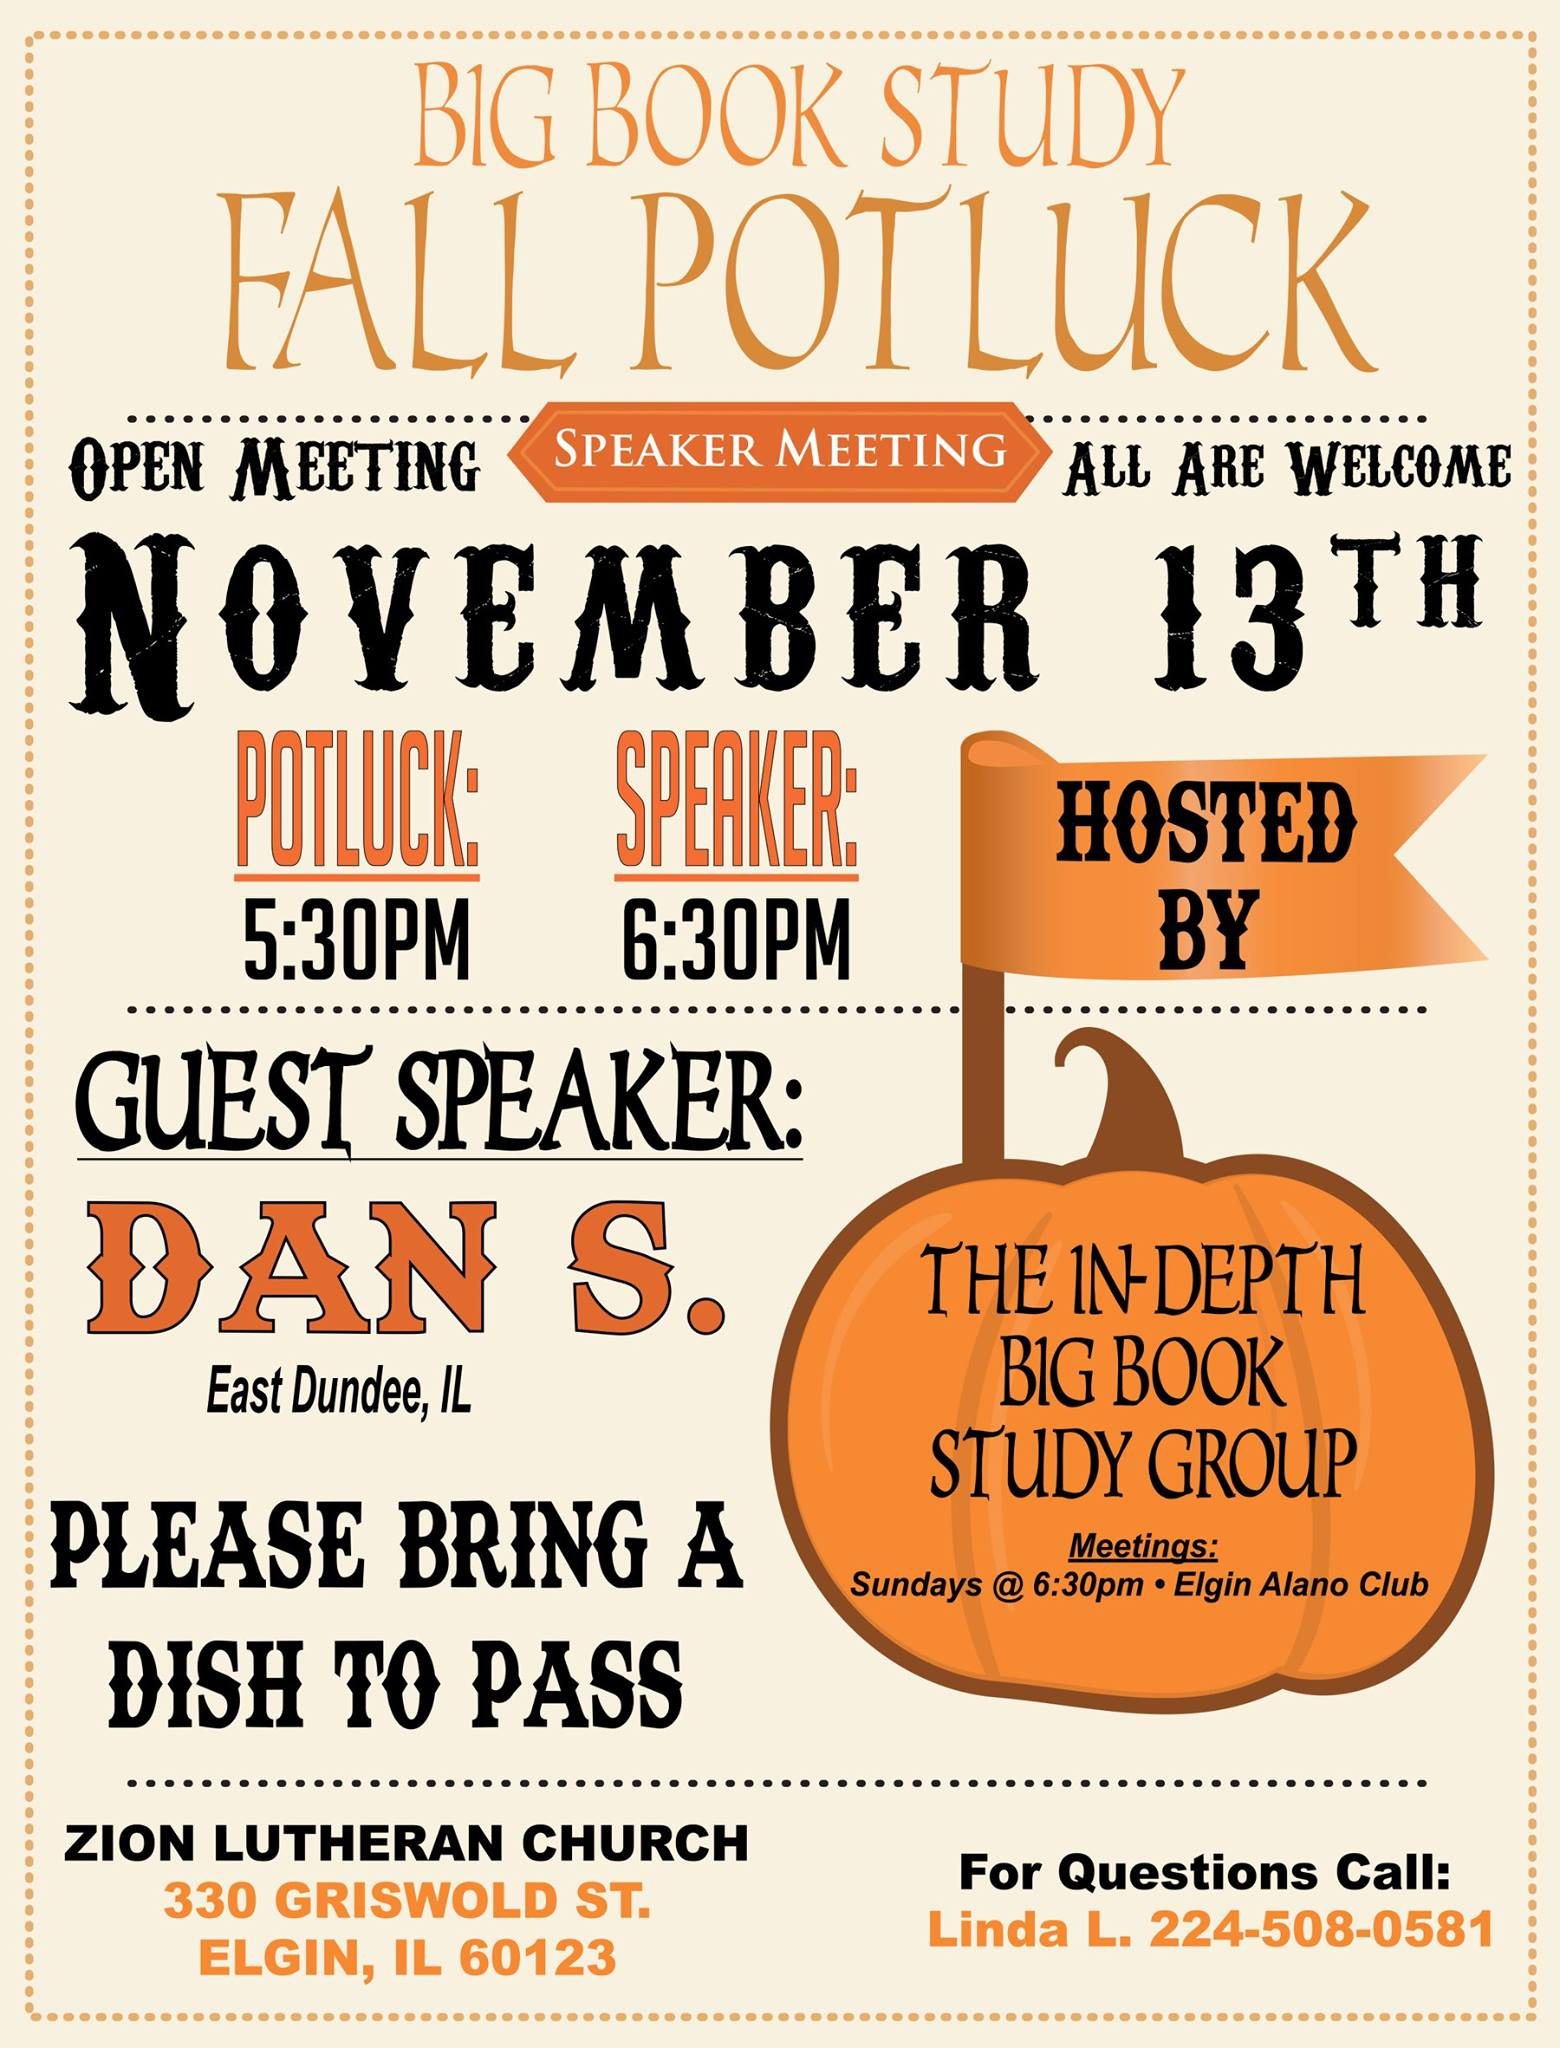 Fall Open Speaker Potluck – In-Depth Big Book Study Group 1